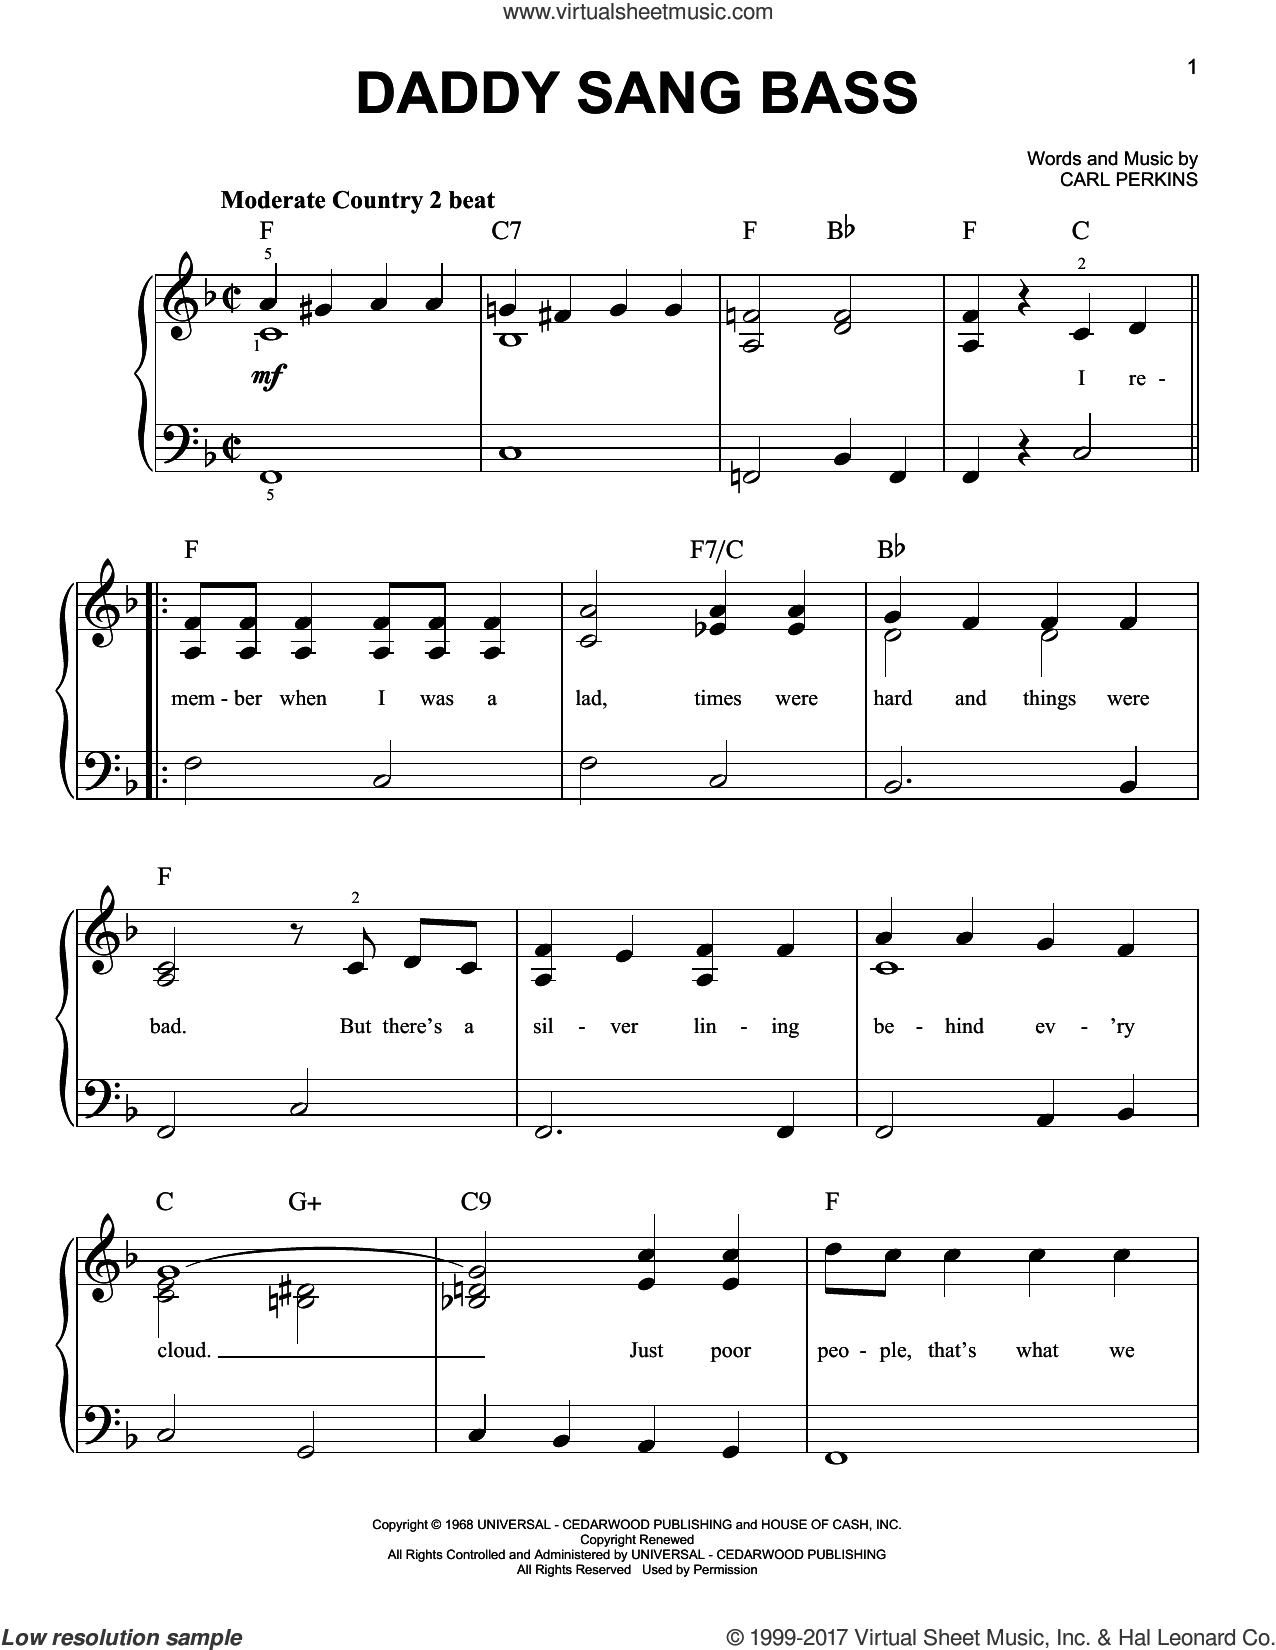 Daddy Sang Bass sheet music for piano solo by Carl Perkins and Johnny Cash. Score Image Preview.